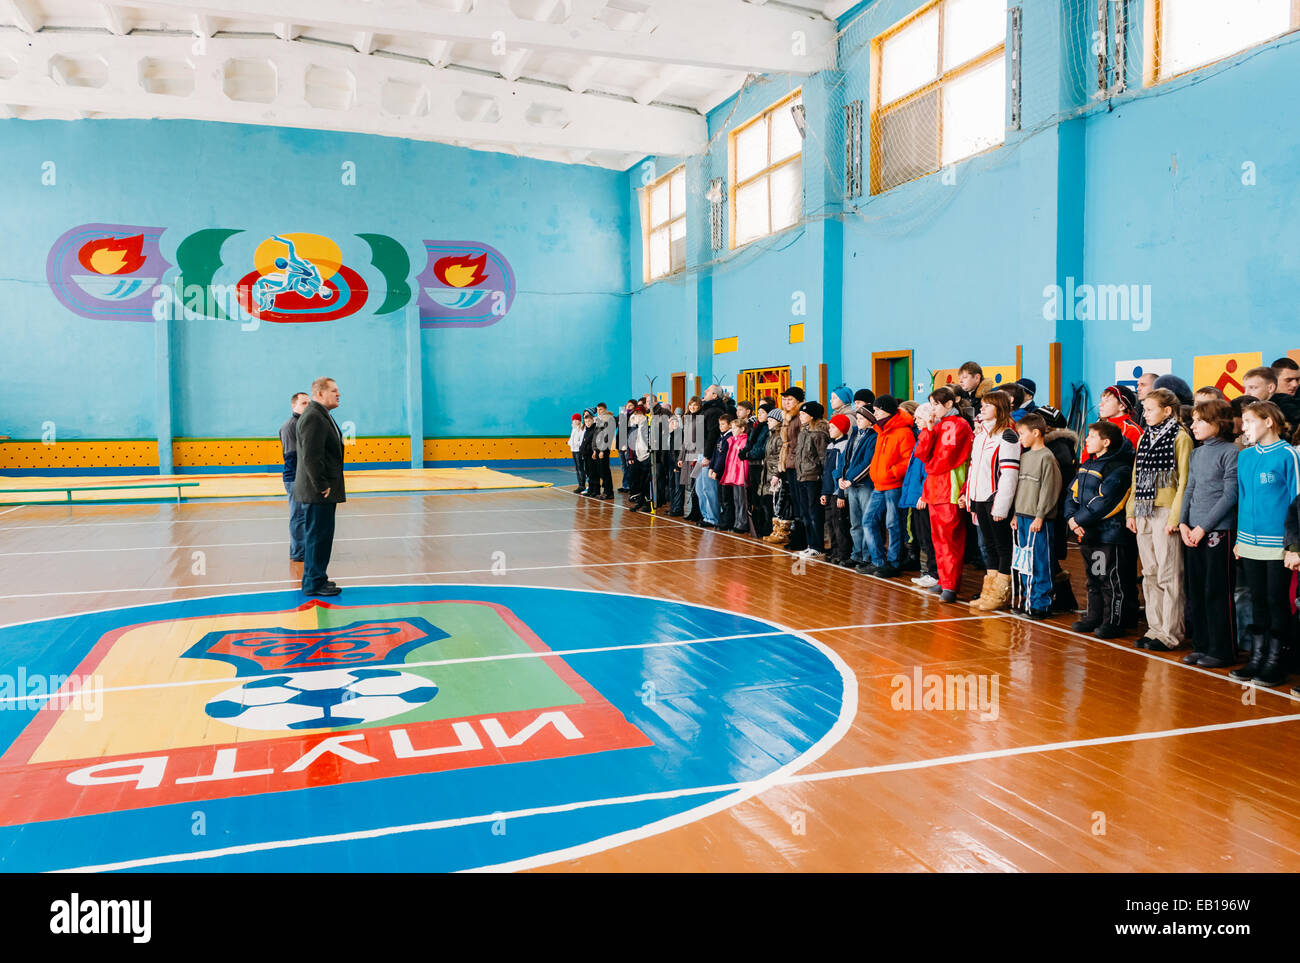 Belarusian secondary school pupils lined up in the school gym before the winter ski competitions. - Stock Image